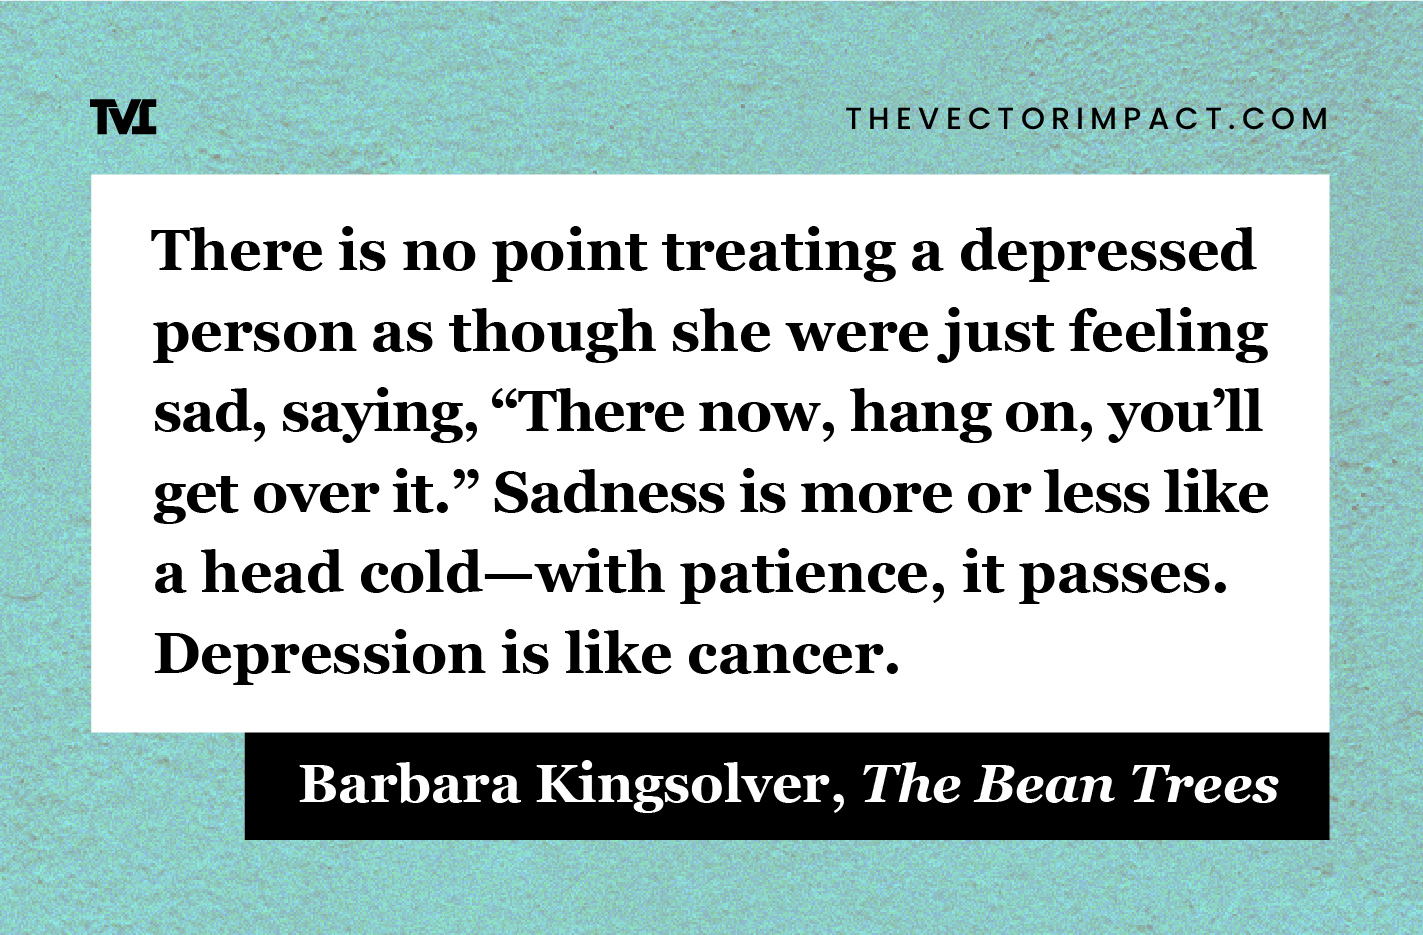 Barbara Kingsolver, The Bean Trees, quote about depression graphic